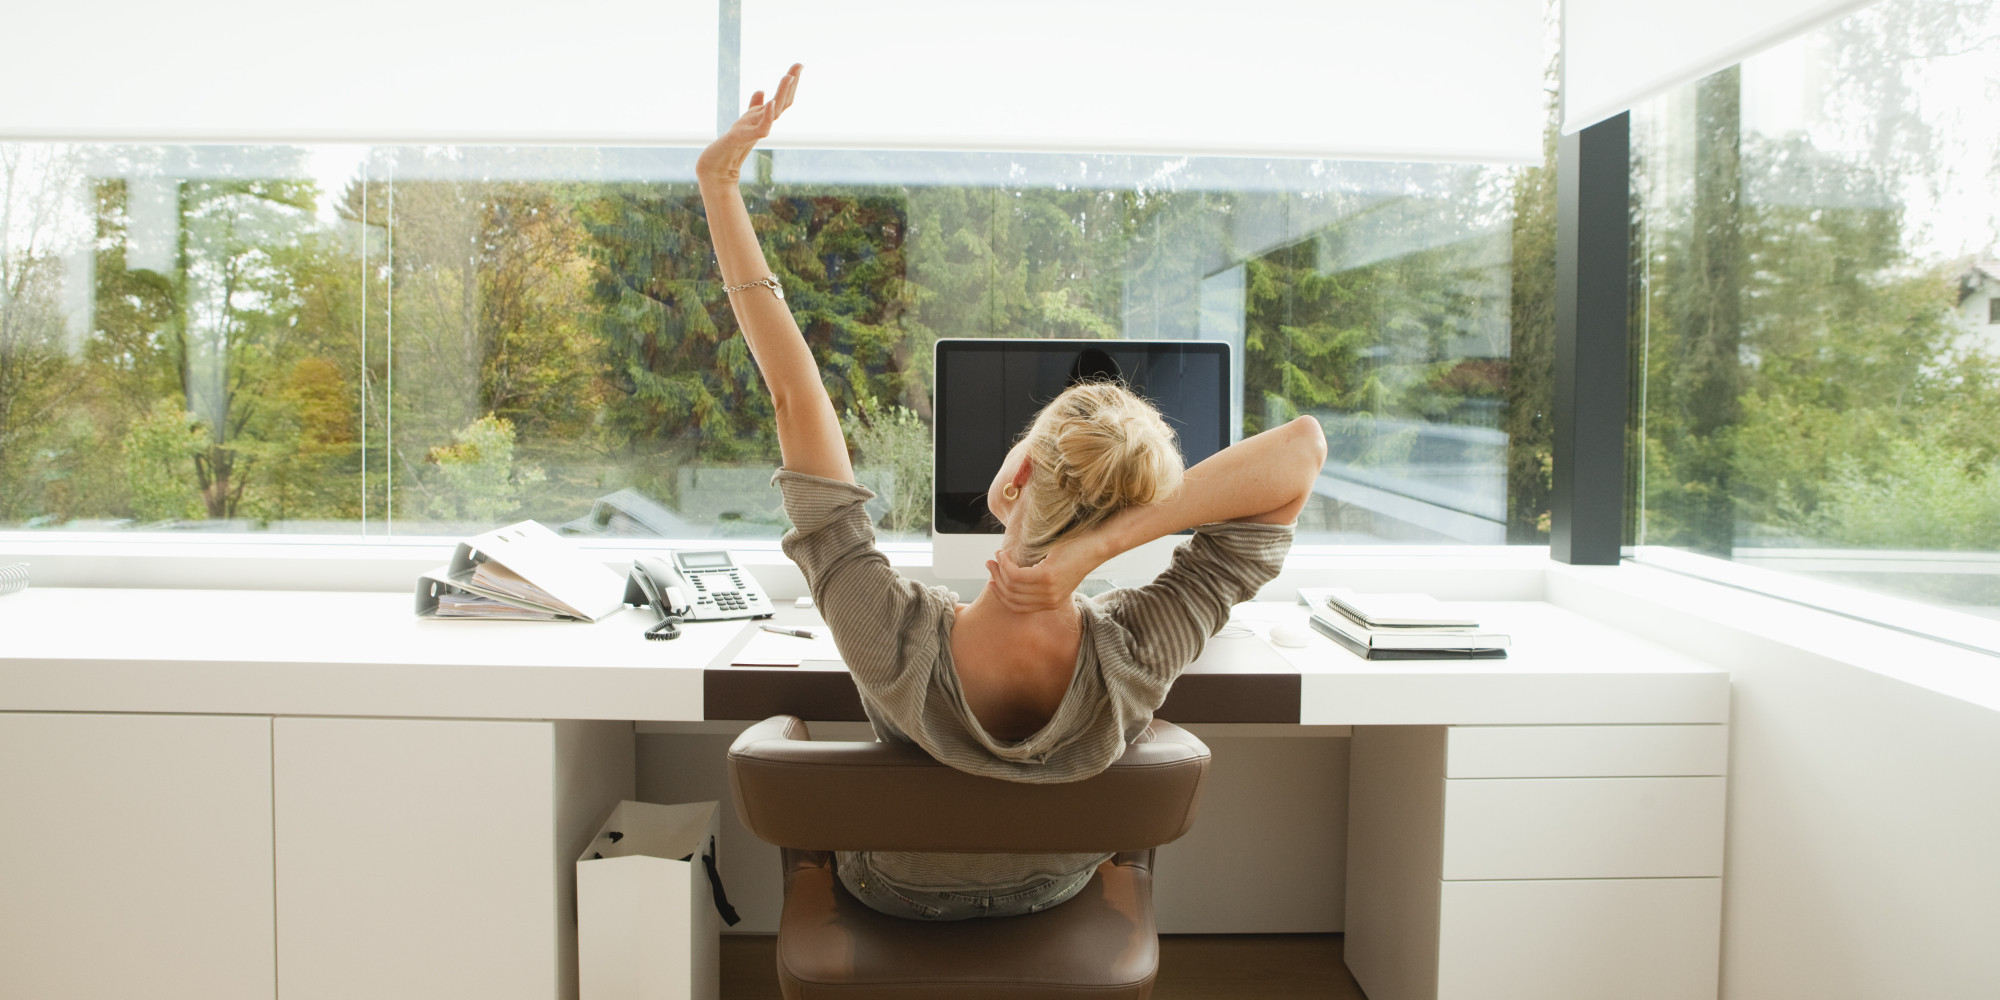 Woman with back pain at computer.jpg.838x0_q67_crop-smart.jpg